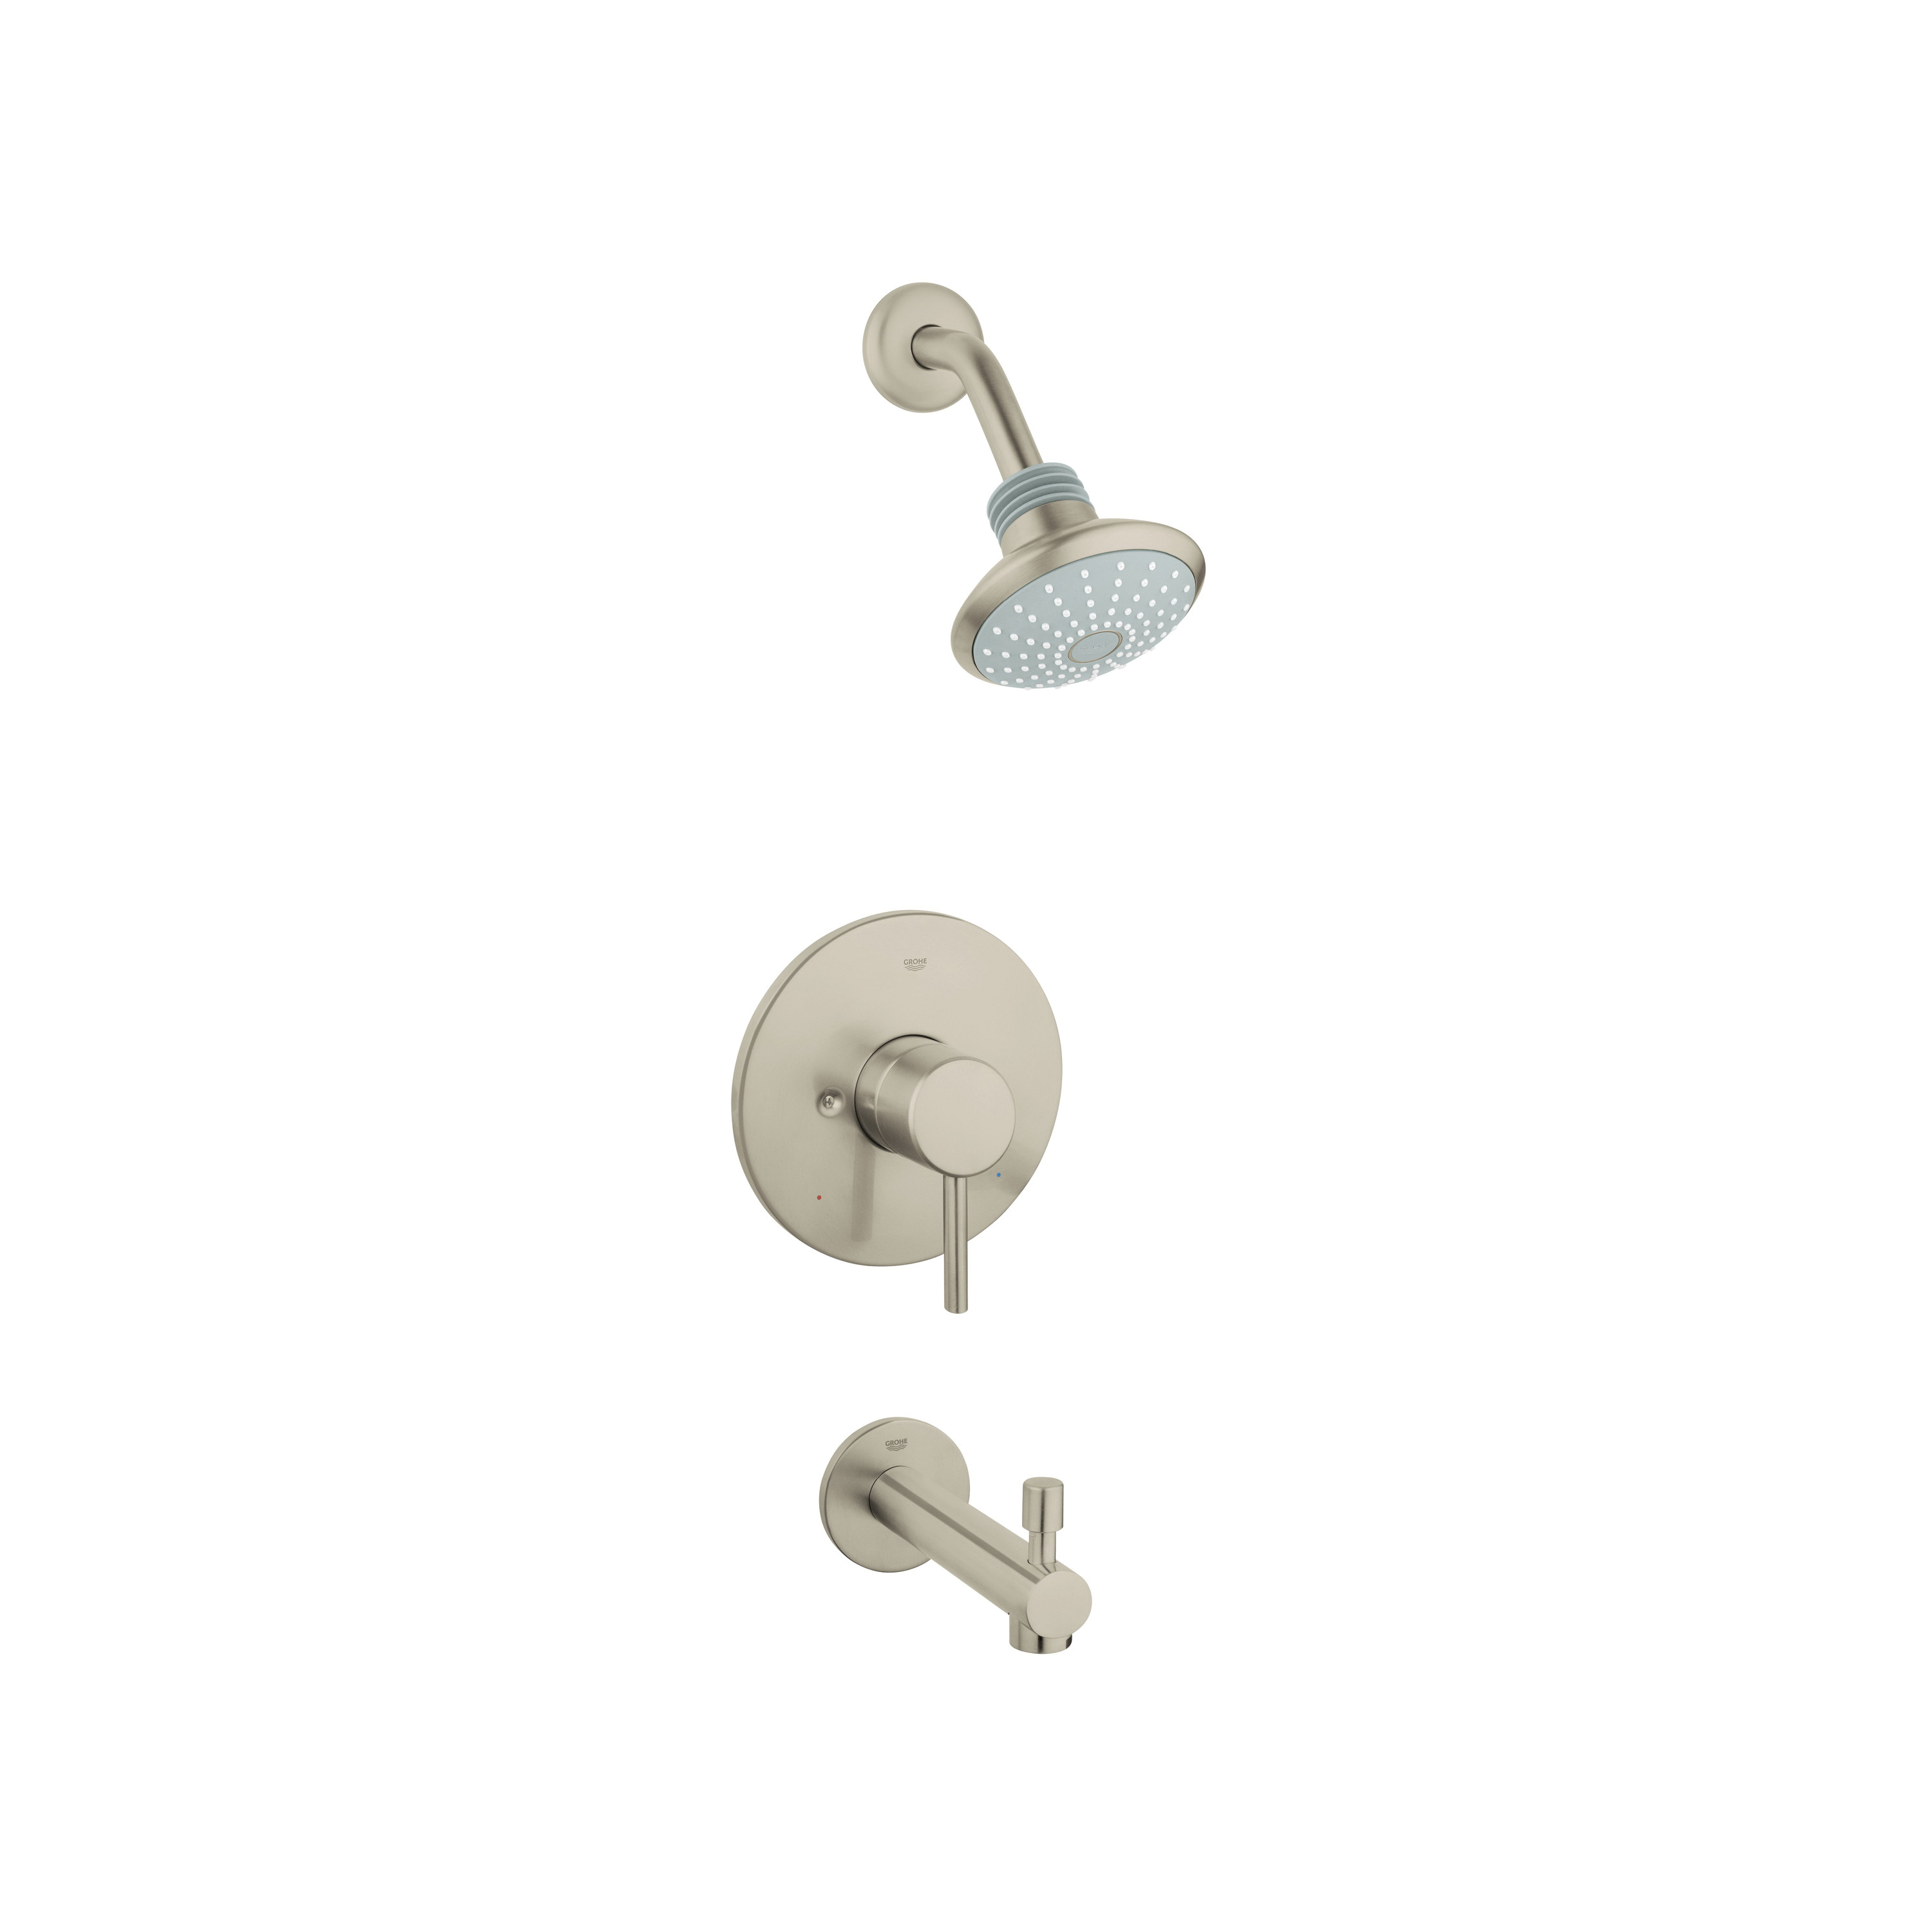 GROHE 35009EN1 Concetto Valve Bathtub/Shower Combo Faucet, 2.5 gpm Shower, Brushed Nickel